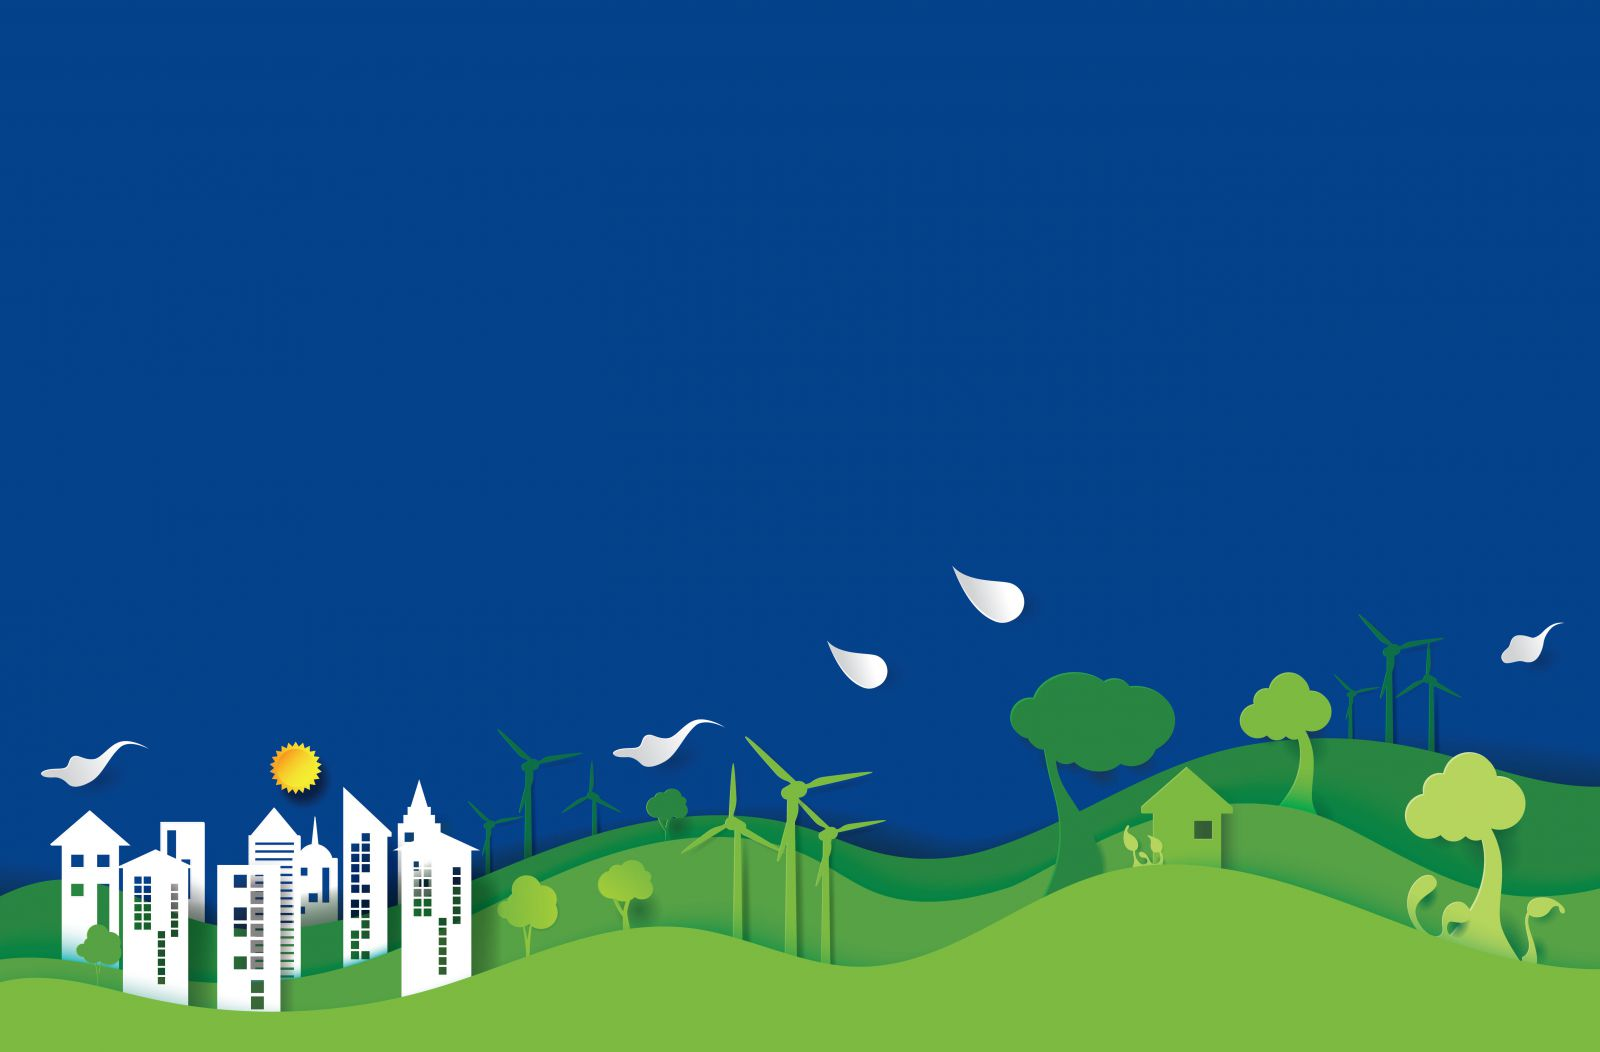 Paper cut-out style illustration of some country-side hills, wind turbines and a city based in the hills